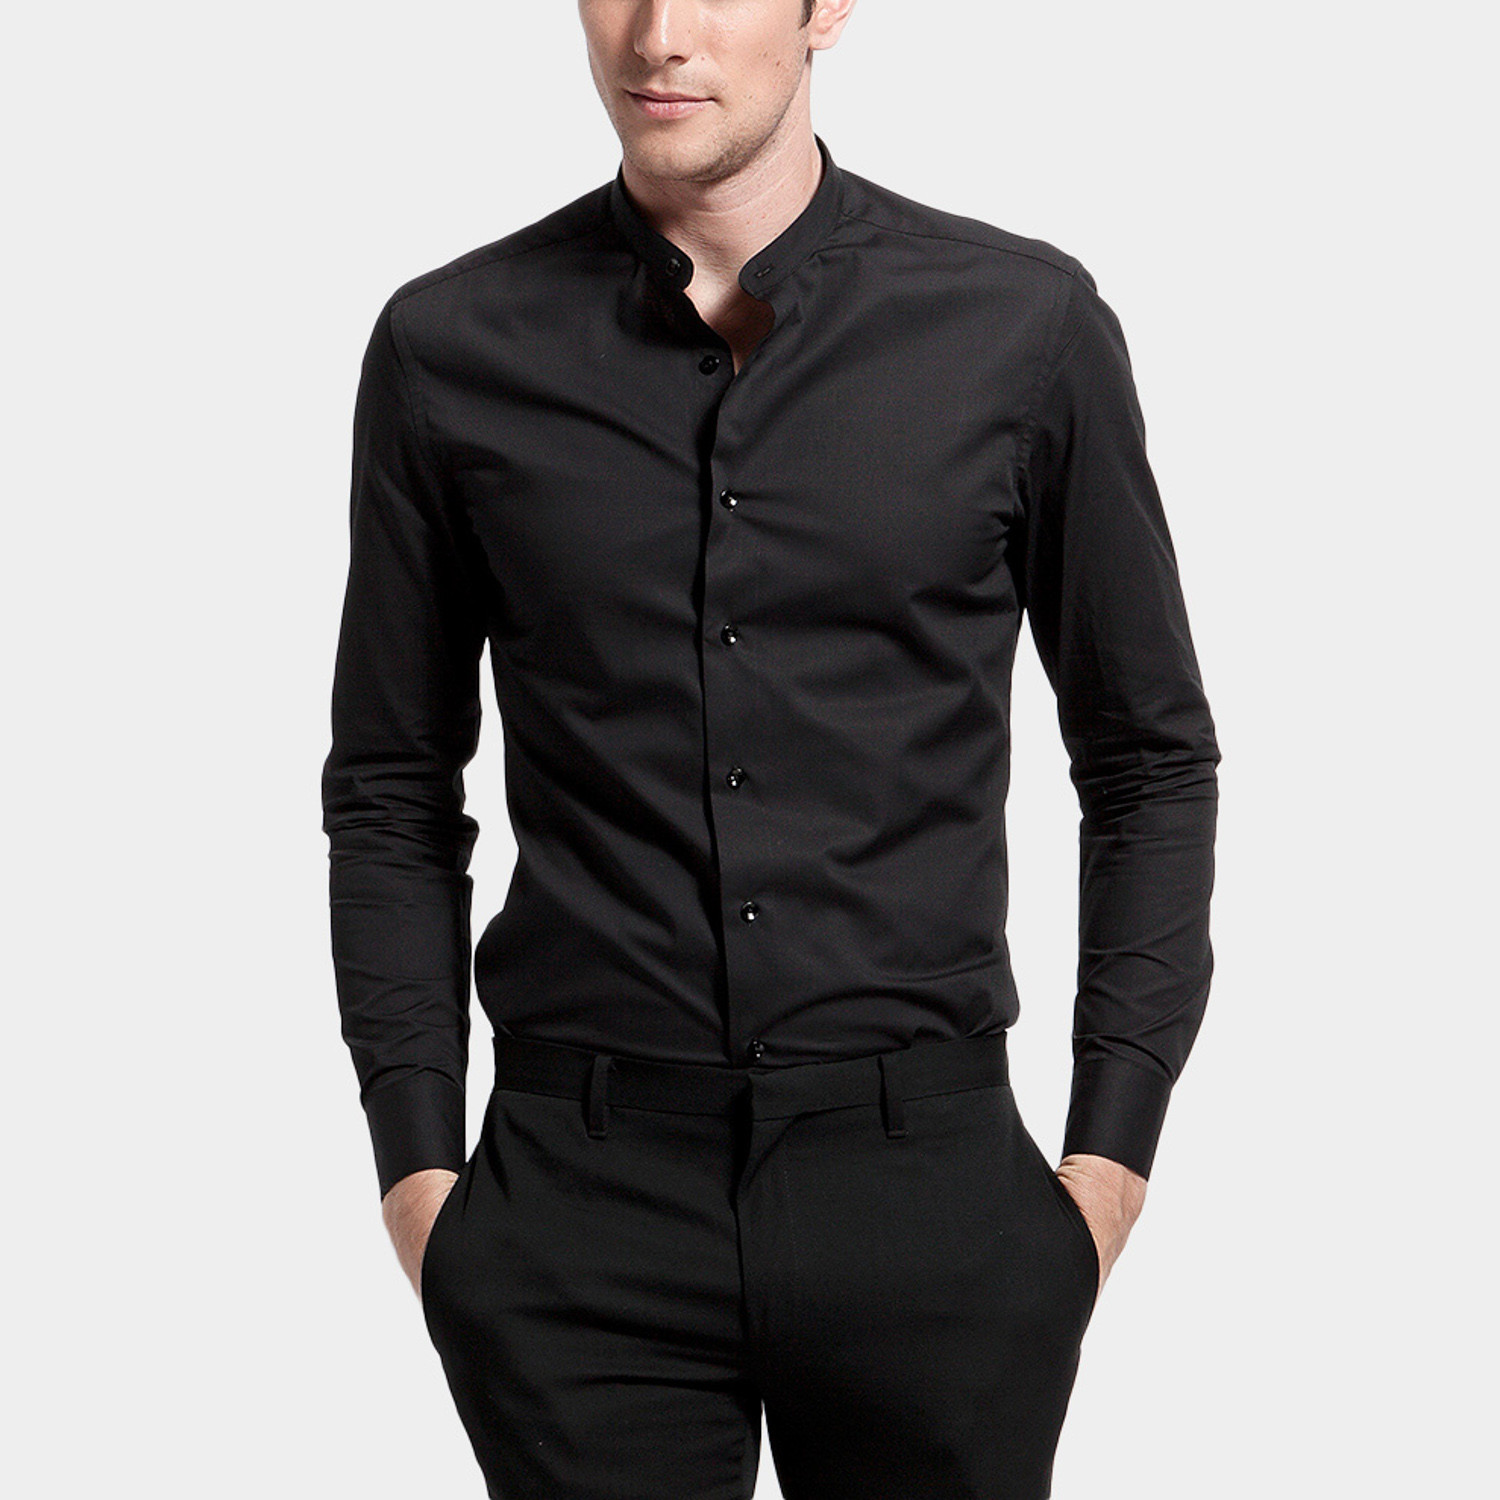 Mao collar dress shirt black xs basique touch of for 20 34 35 dress shirts